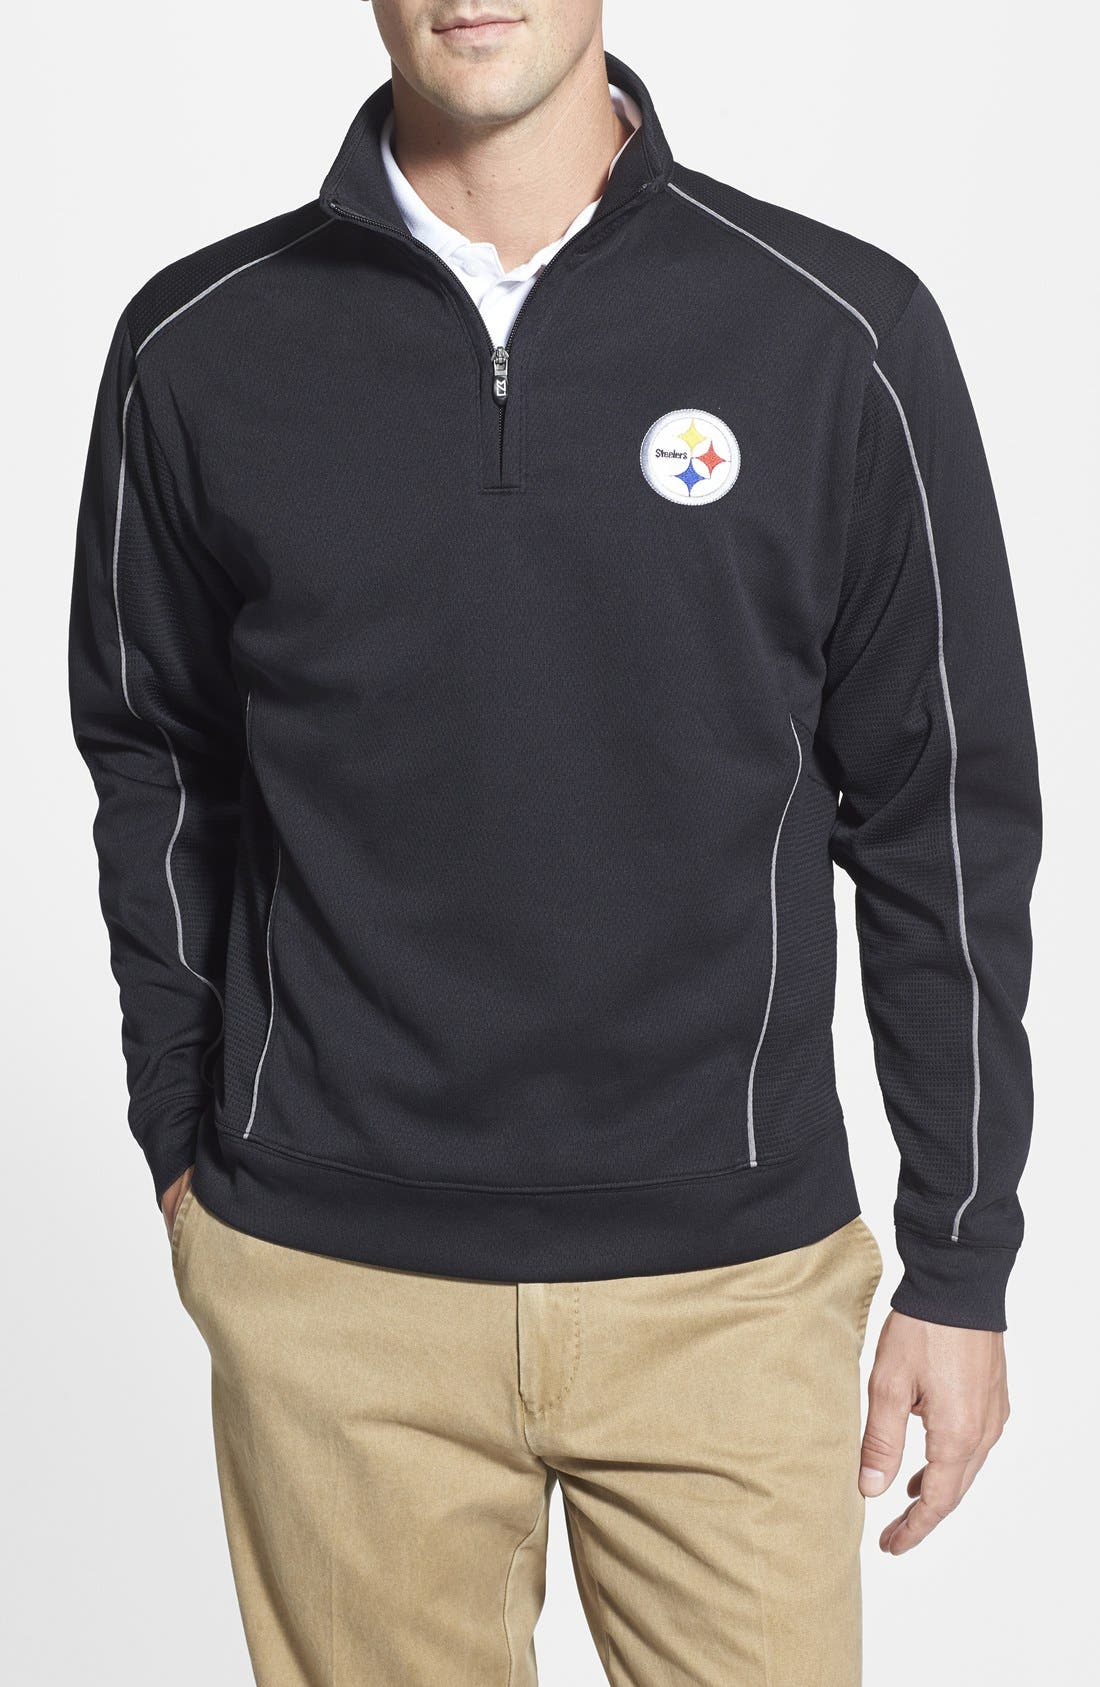 Pittsburgh Steelers - Edge DryTec Moisture Wicking Half Zip Pullover,                             Main thumbnail 1, color,                             Black